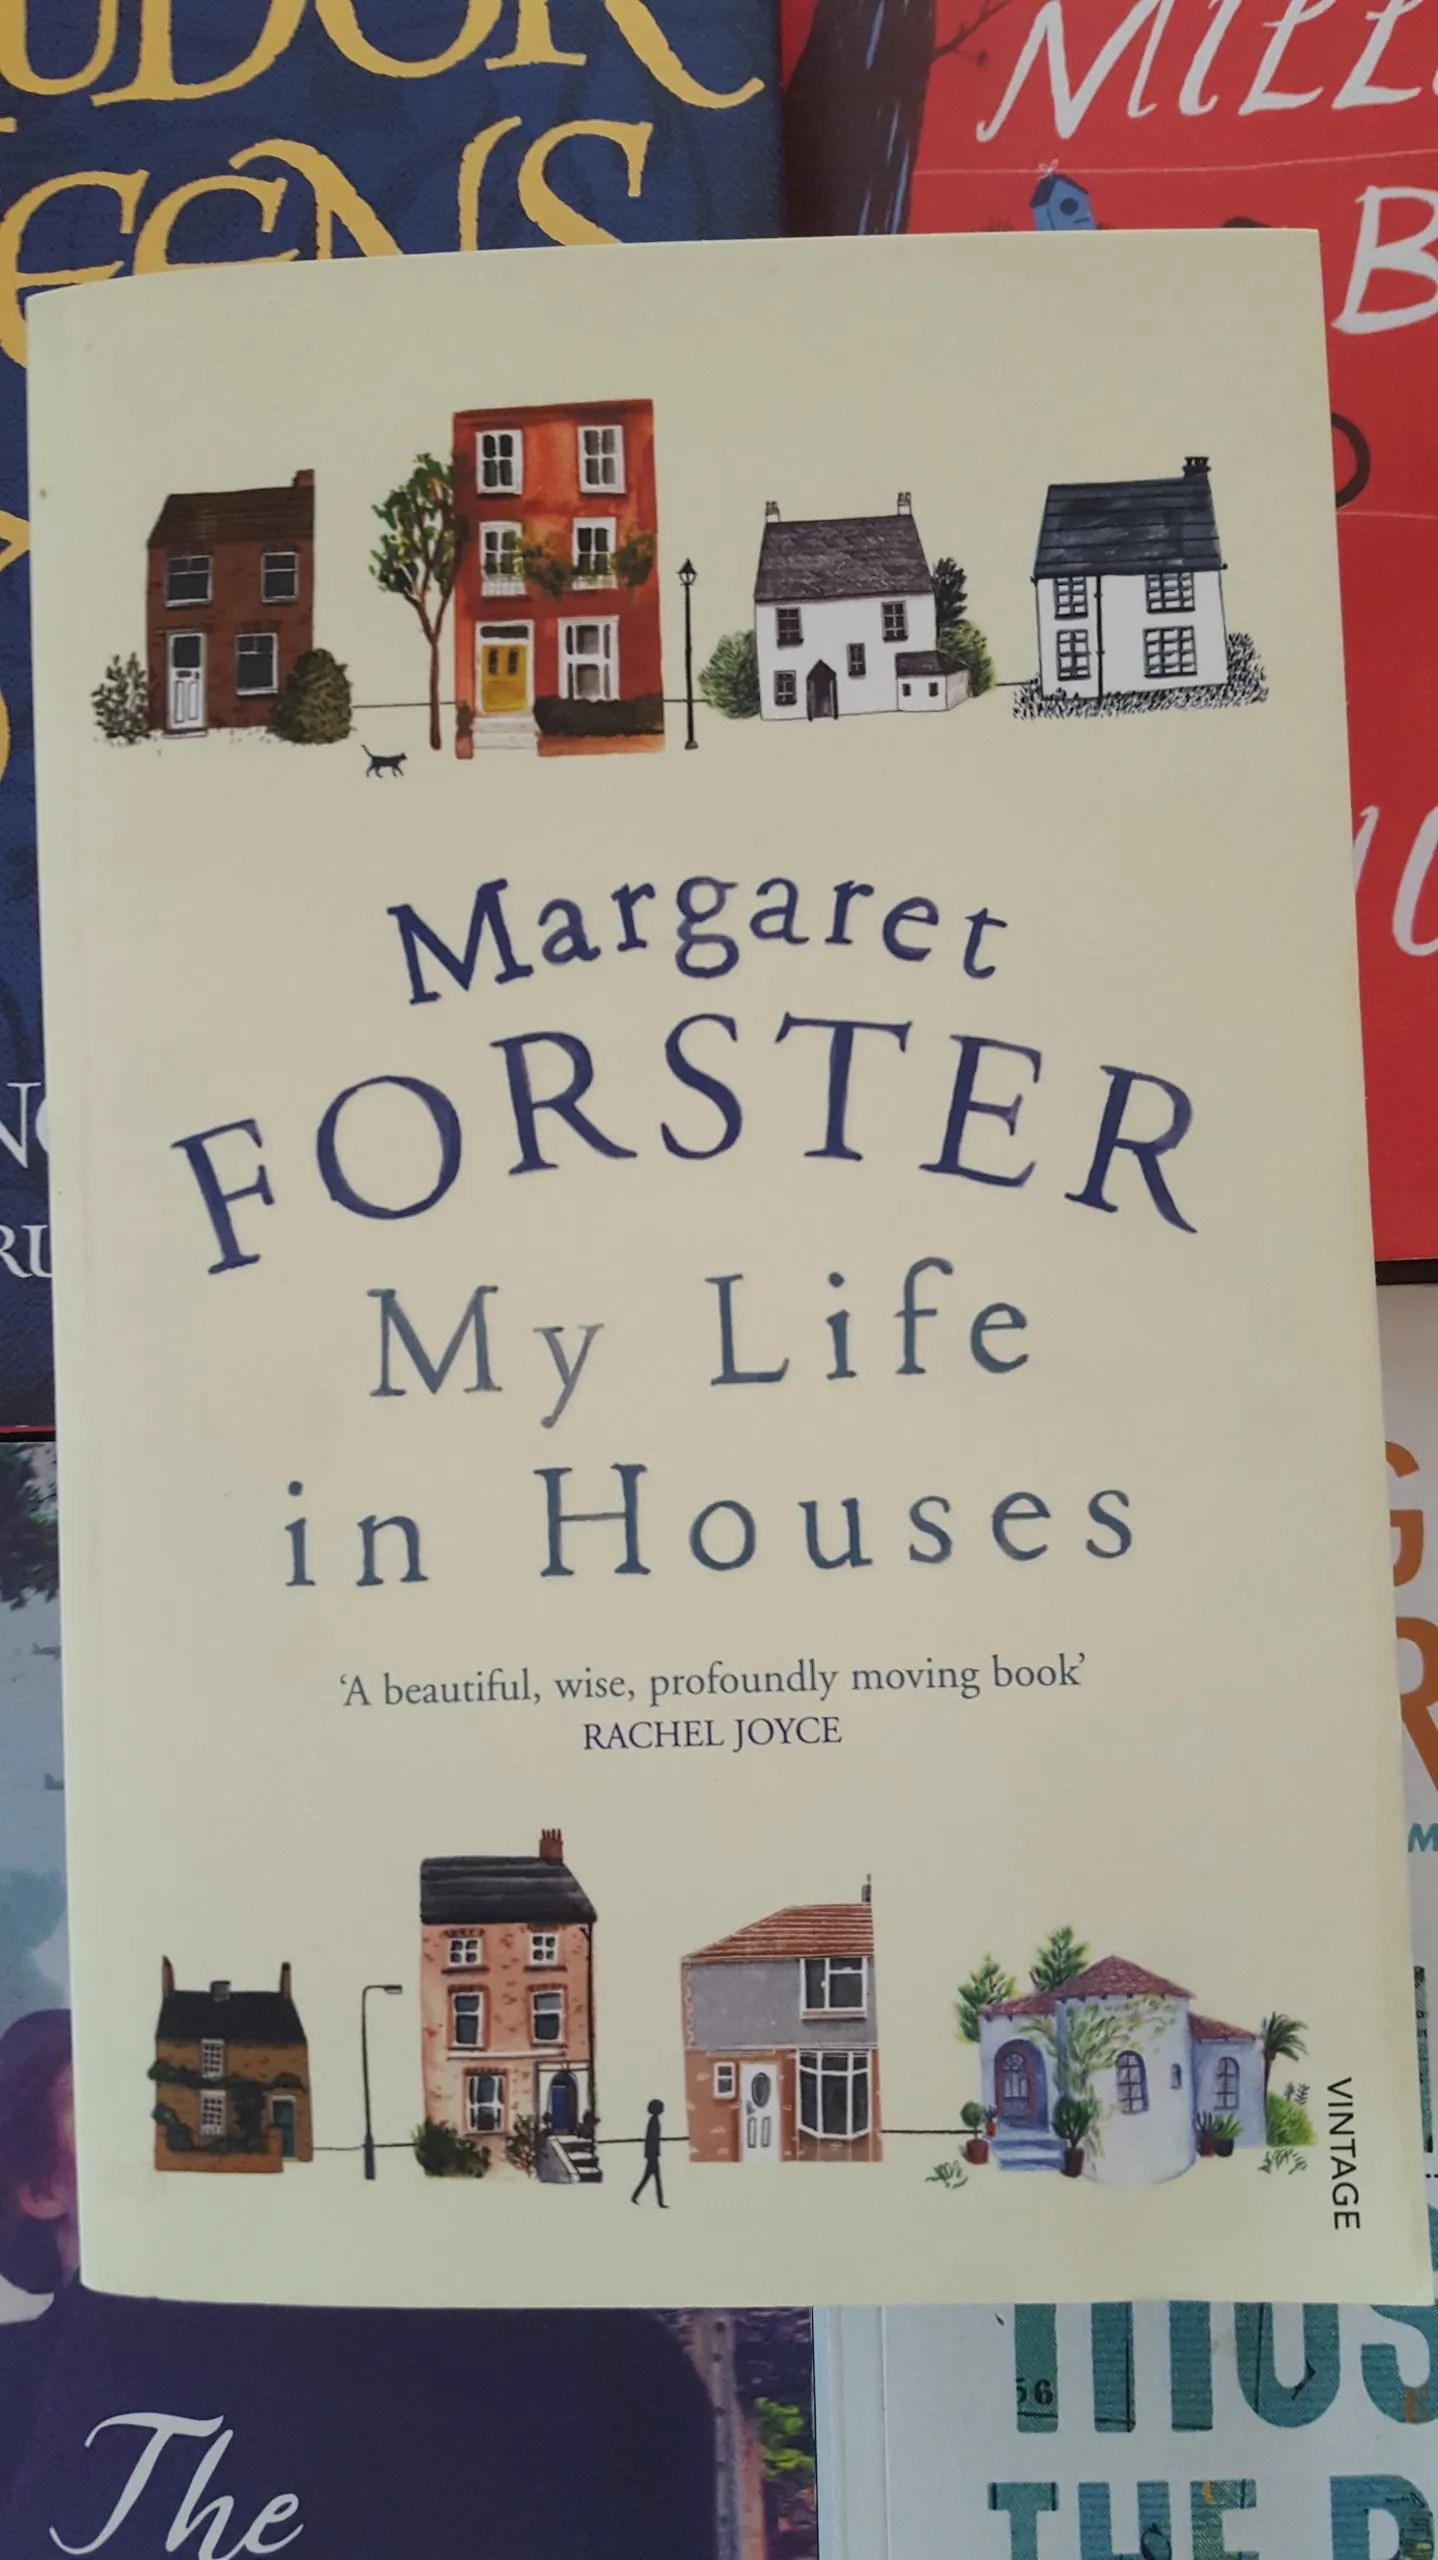 My Life in Houses by Margaret Forster cover